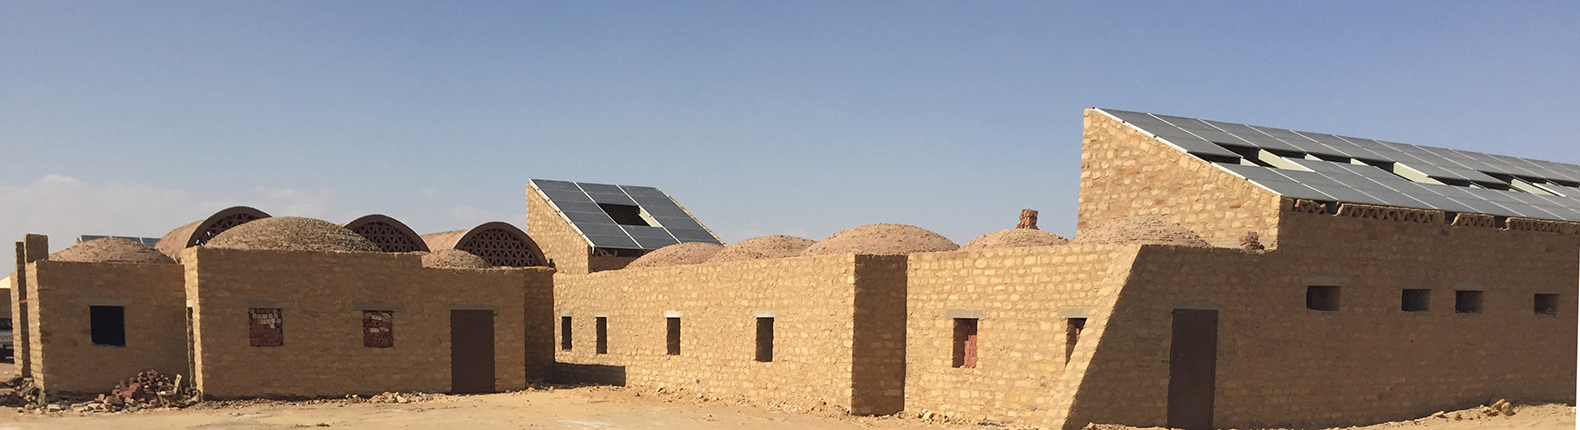 Egypt's first solar-powered village rises from the desert in Bahariya Oasis